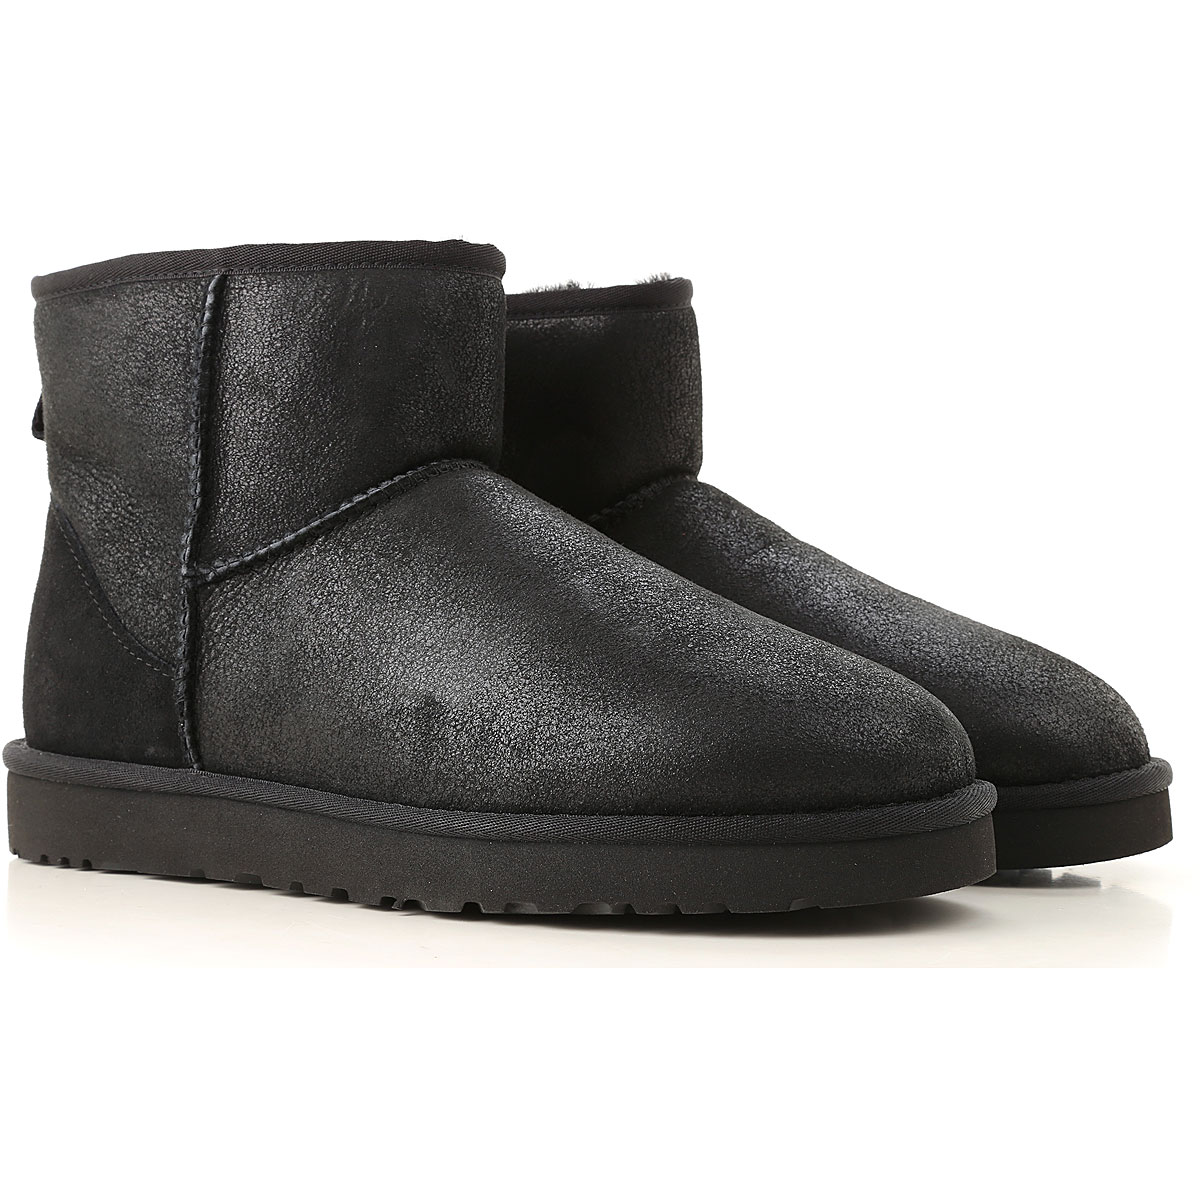 Image of UGG Boots for Men, Booties, Black, Leather, 2017, 10 11 12 7 8 9